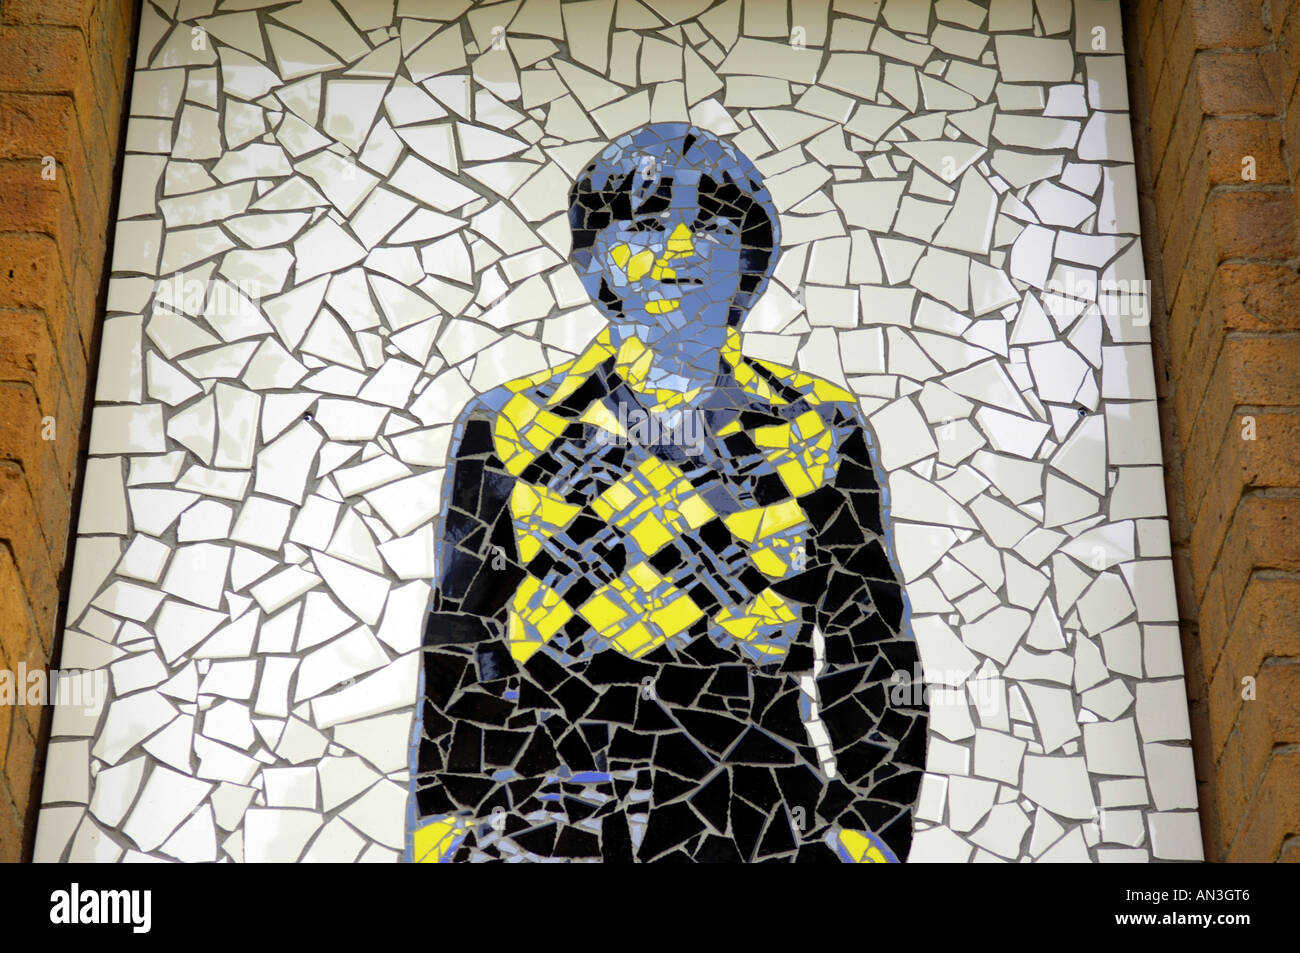 mark e smith the fall legend rocker singer groups band alternative yellow male  man white black tiles wall biblical reference pu - Stock Image